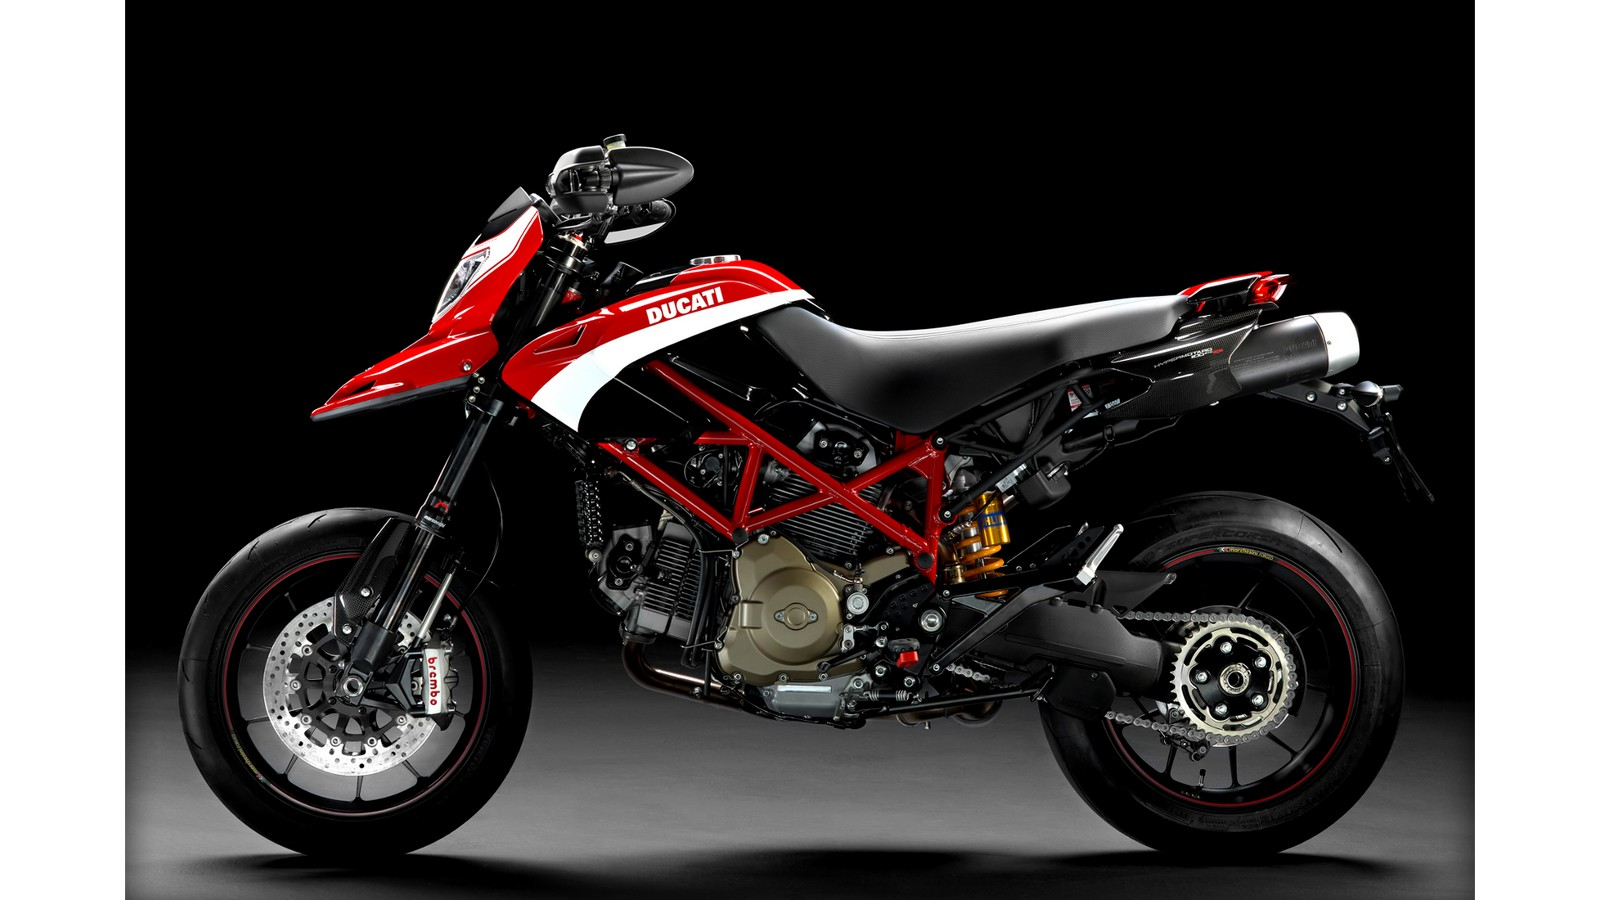 2013 ducati hypermotard 1100evo sp carries on the heritage autoevolution. Black Bedroom Furniture Sets. Home Design Ideas